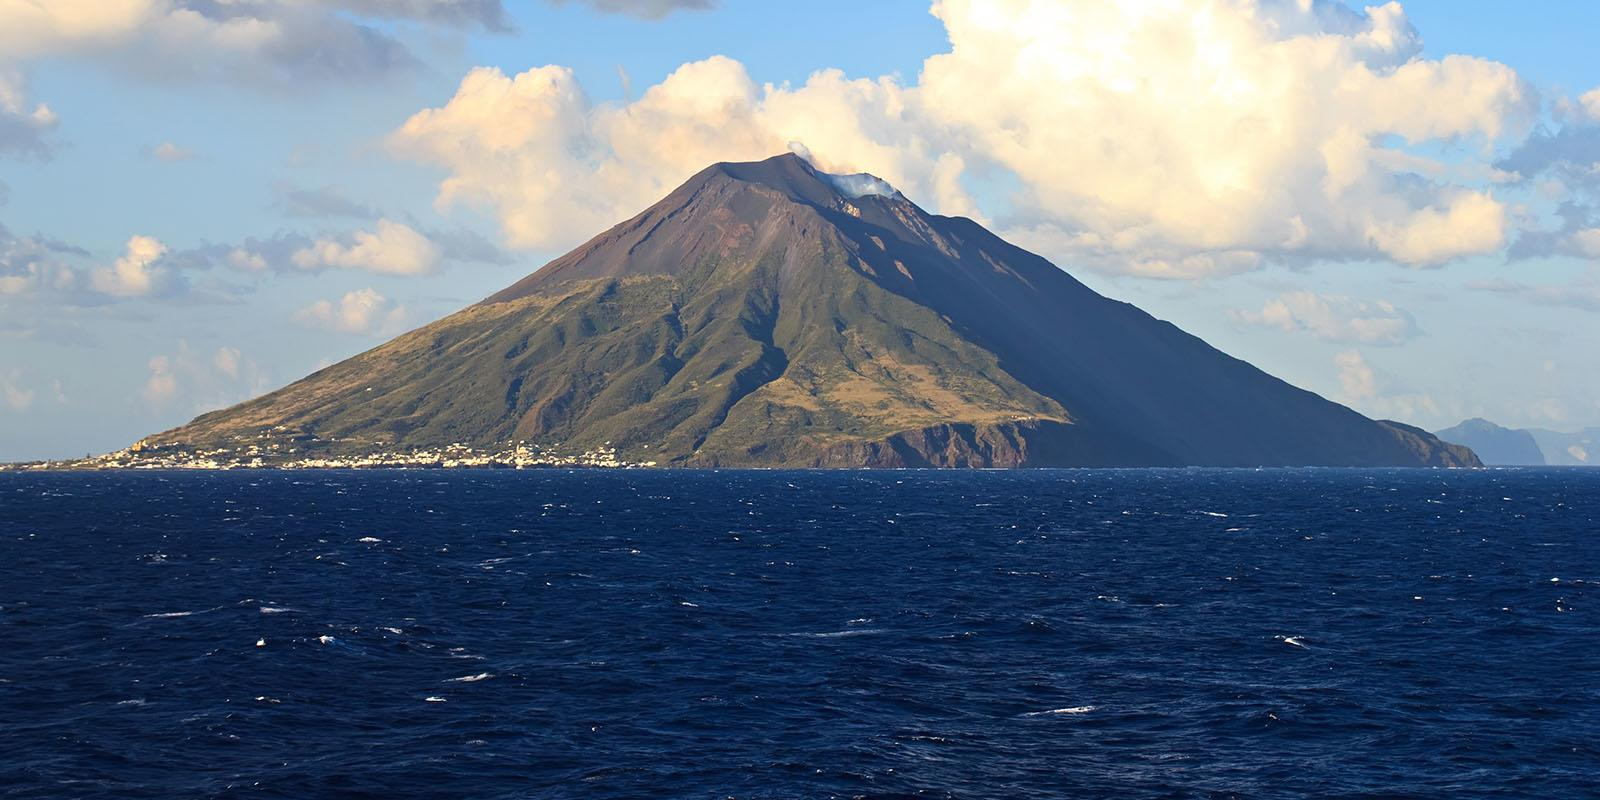 The Aeolian Islands like you've never seen them before!